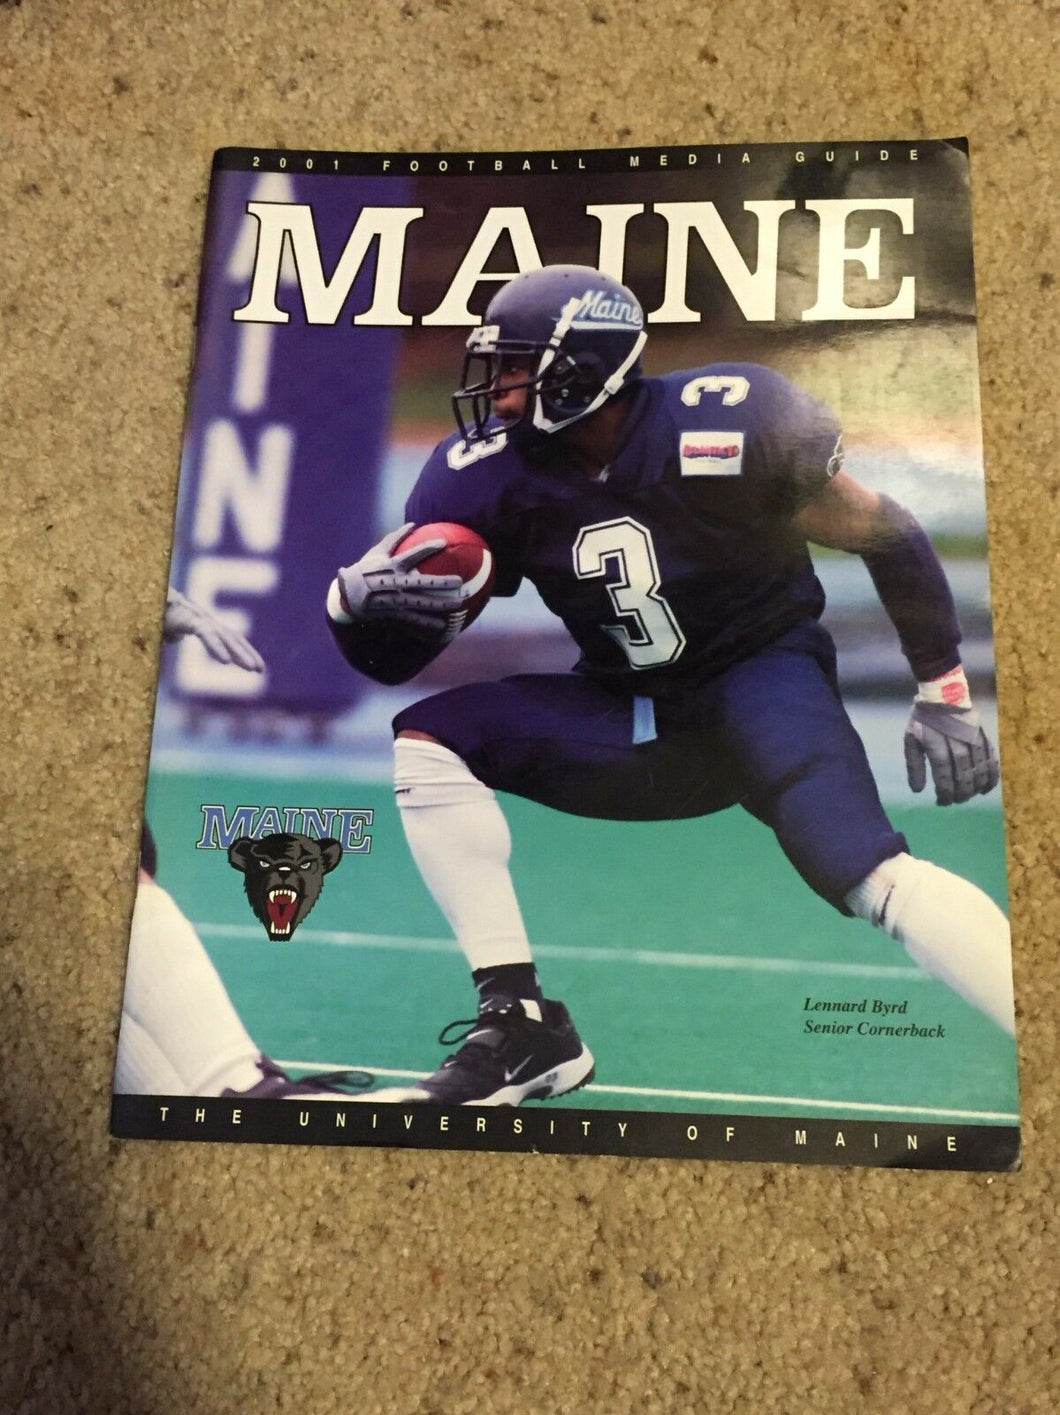 2001 UNIVERSITY OF MAINE  COLLEGE FOOTBALL MEDIA GUIDE - b6